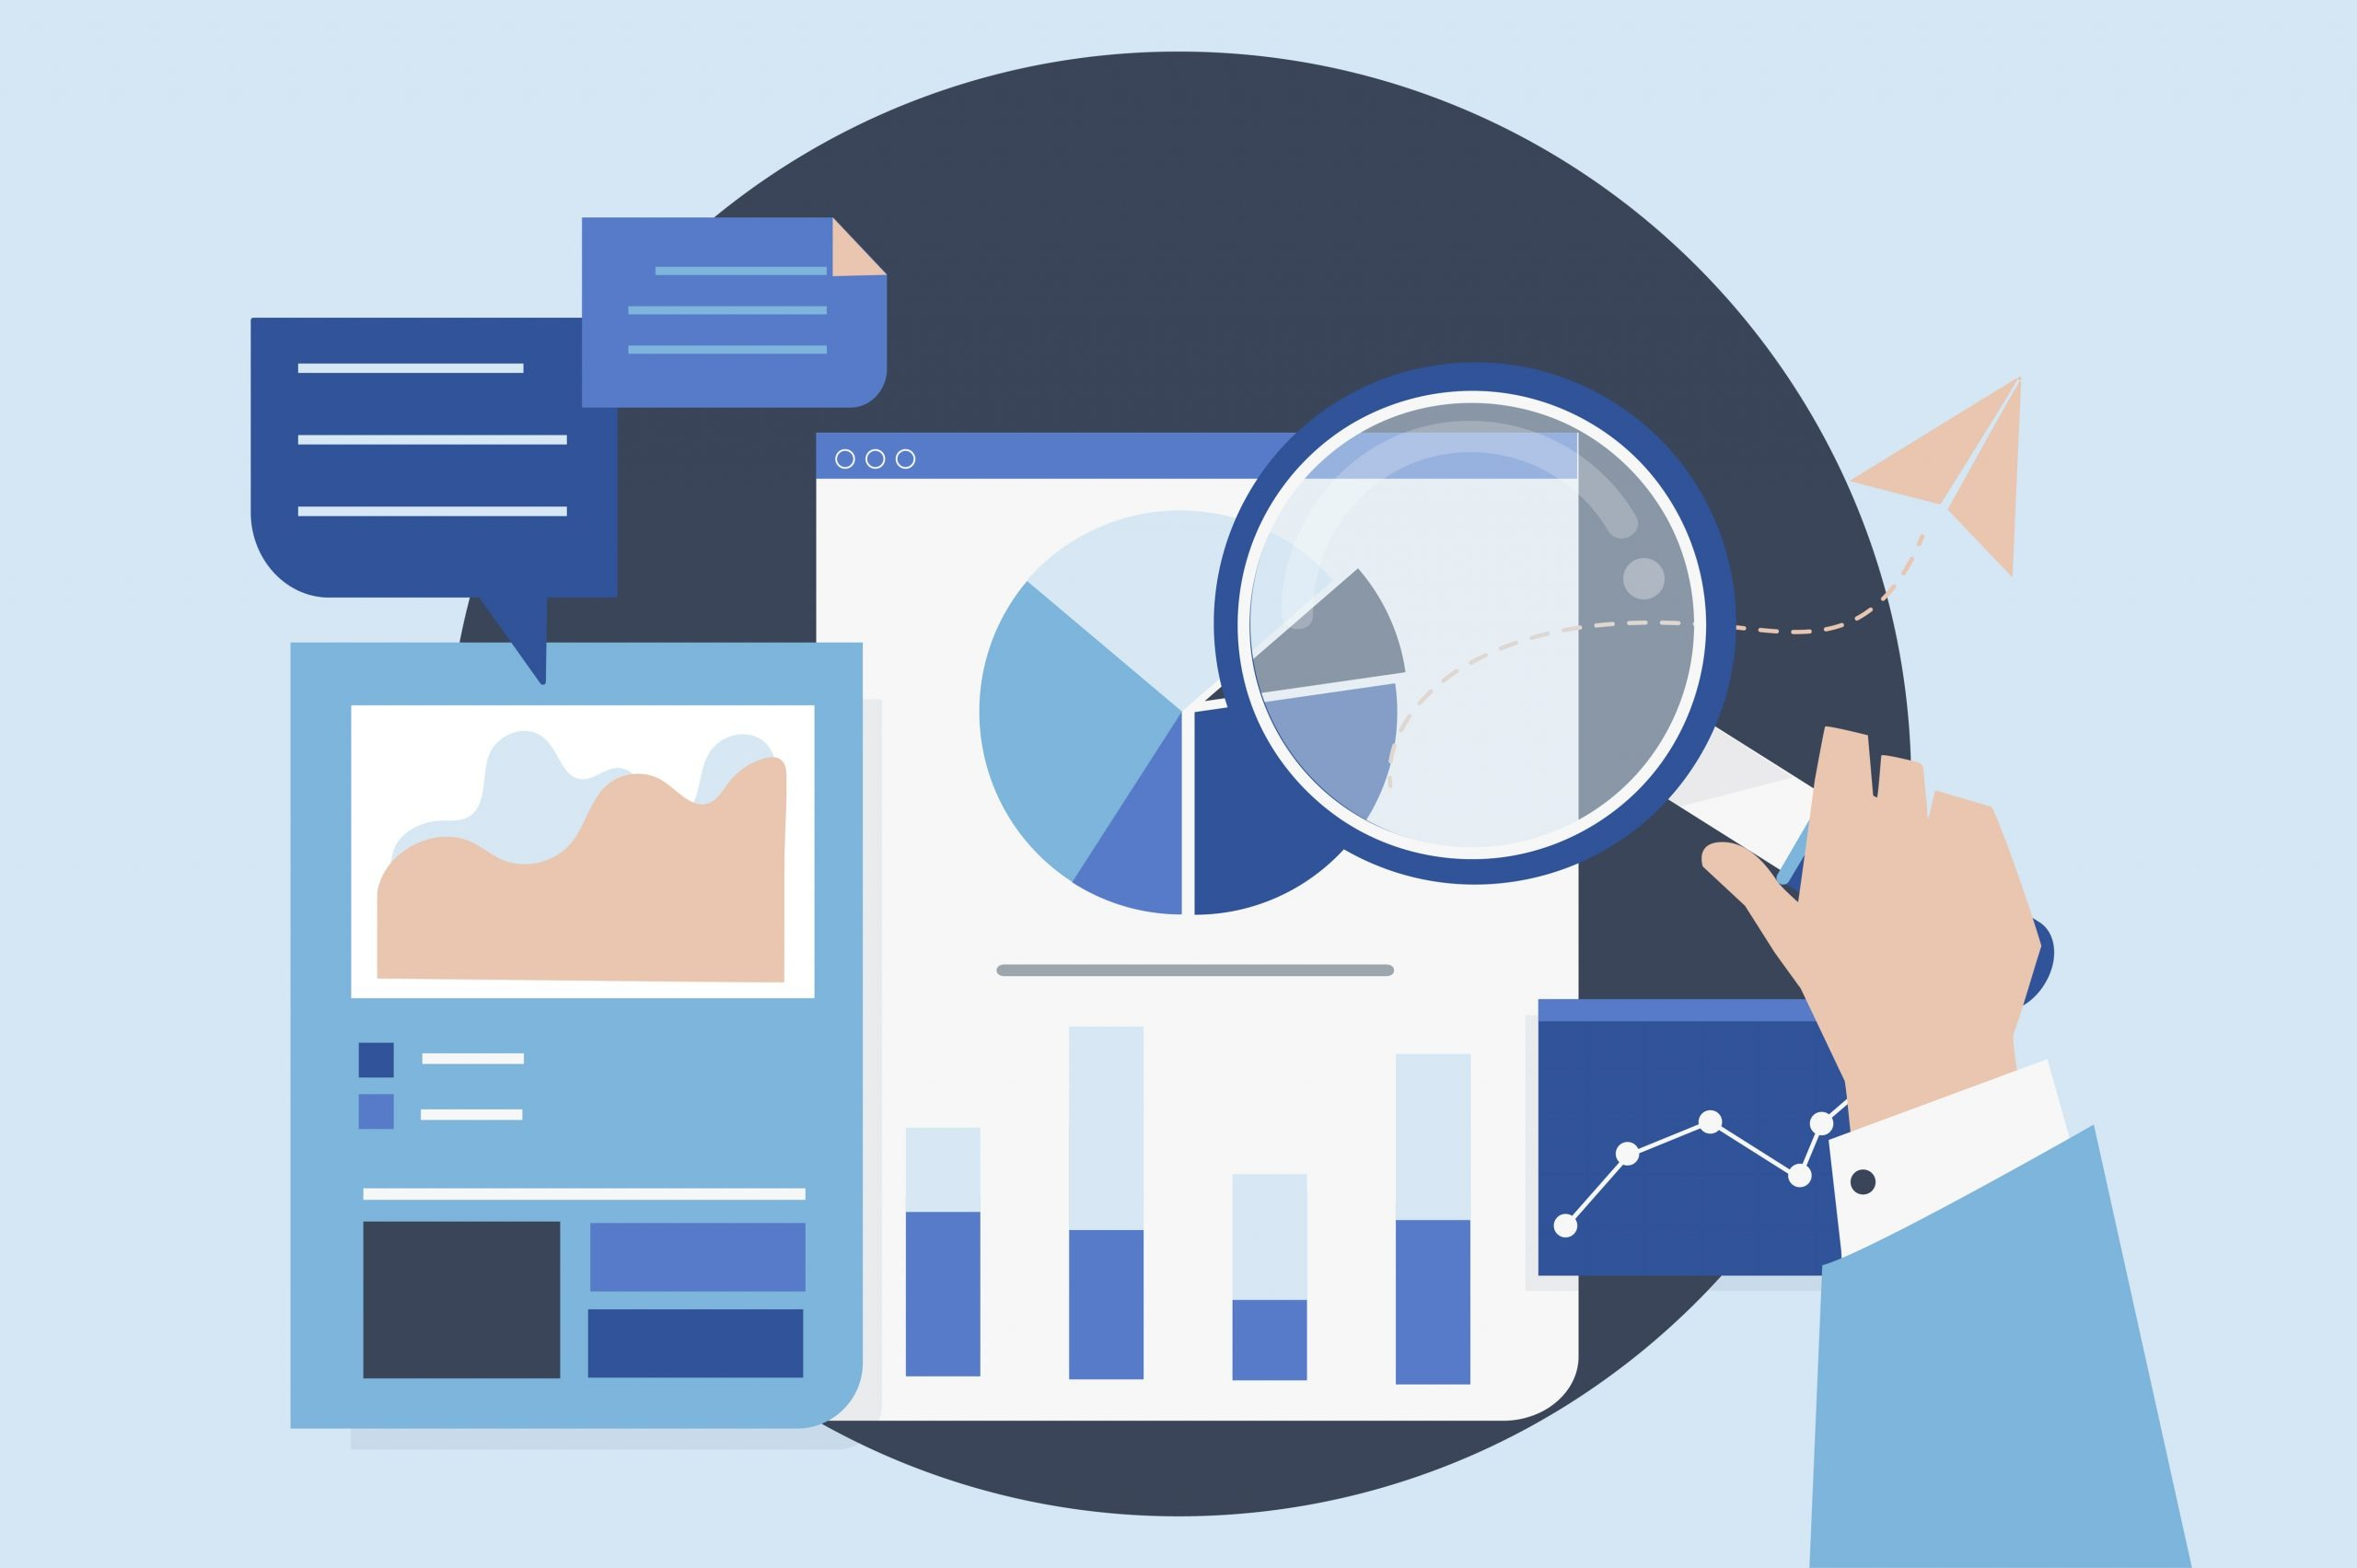 Business analytic tools - graphs